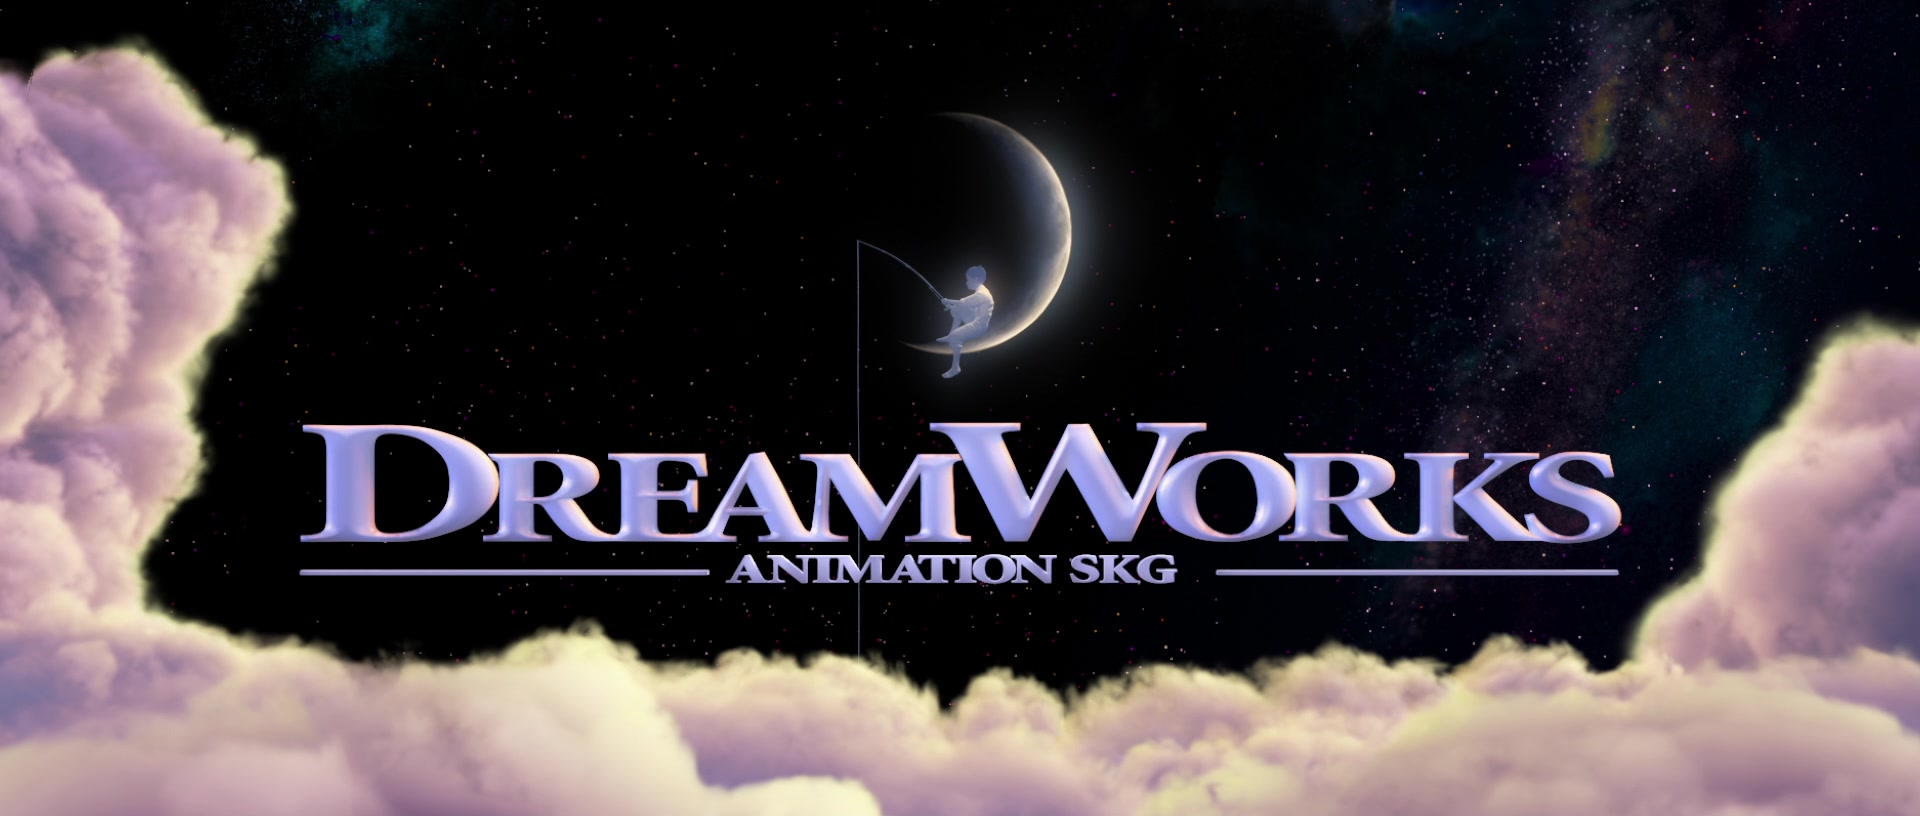 Dreamworks animation logo puss in boots 2011